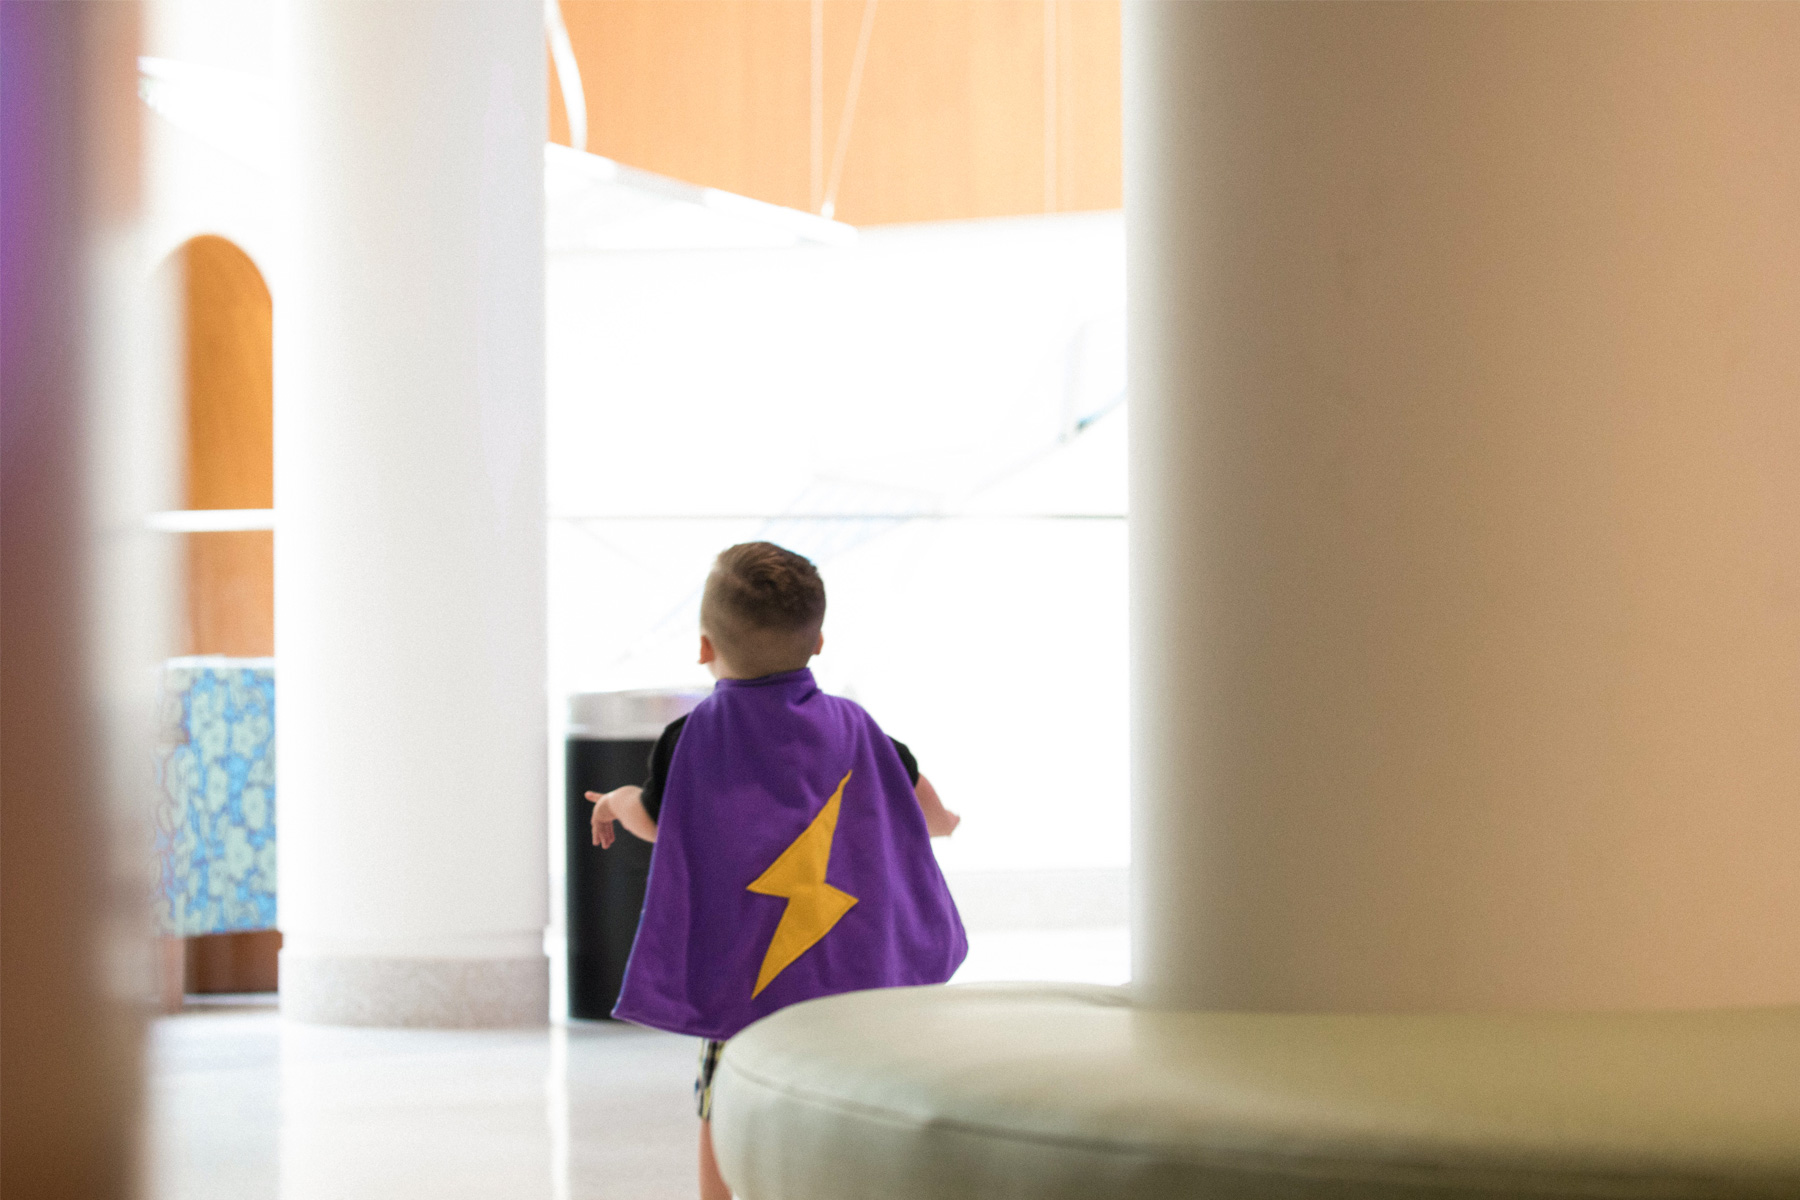 Kase is walking away wearing a purple cape decorated with a large yellow lightning bolt on his back.